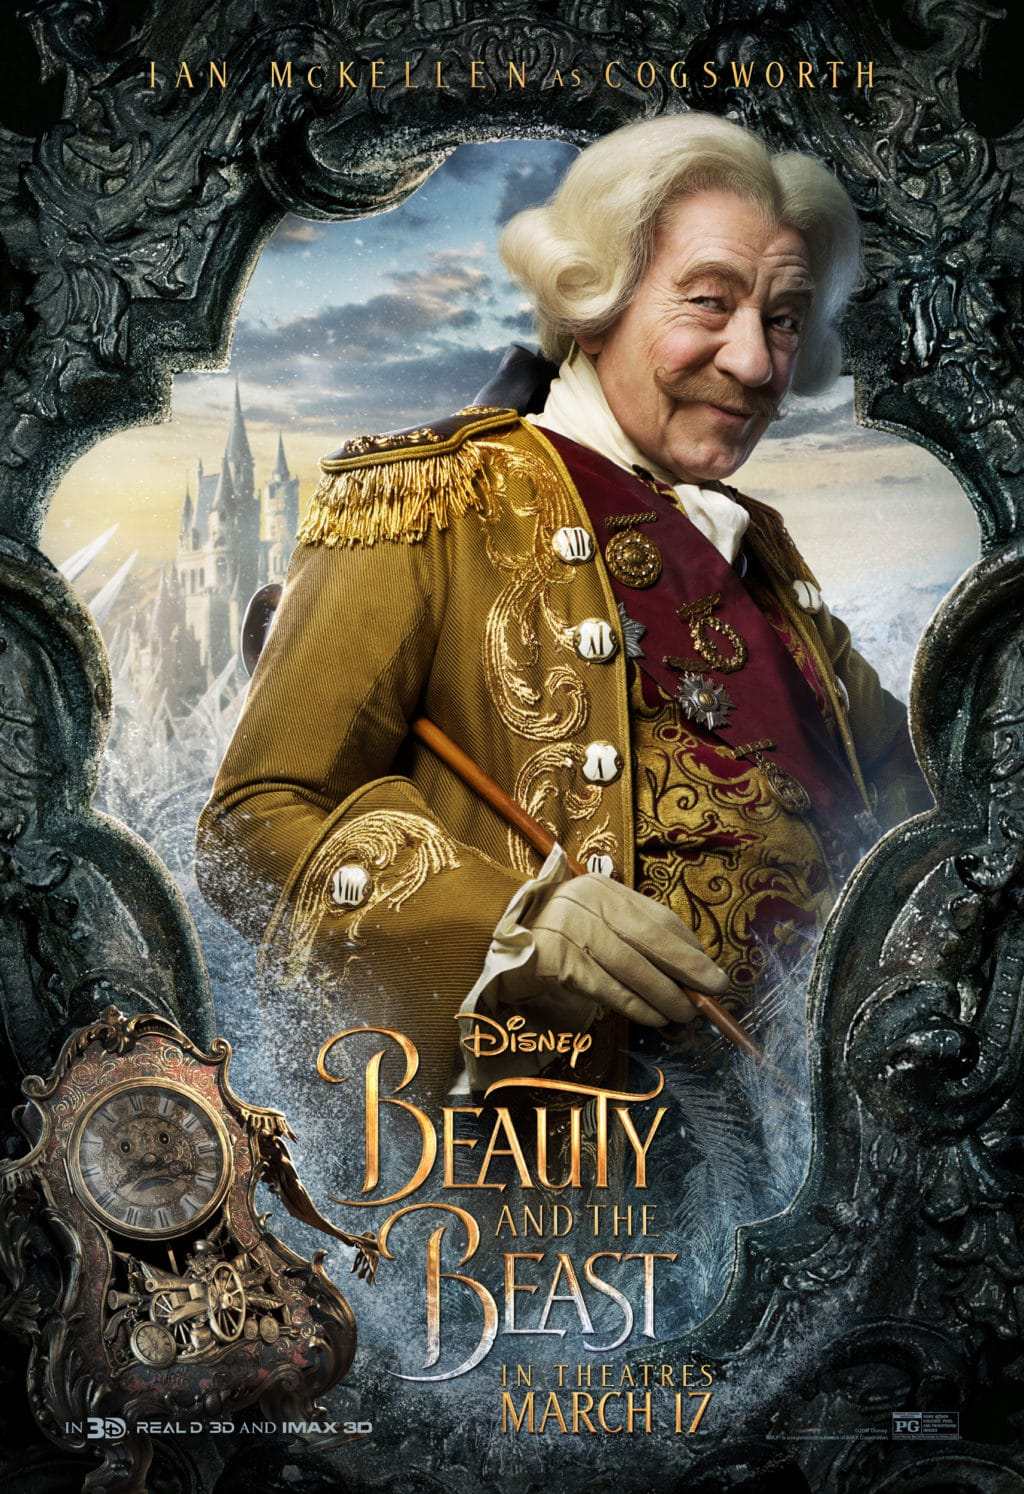 Beauty and the Beast Character Posters ian mckellen cogsworth